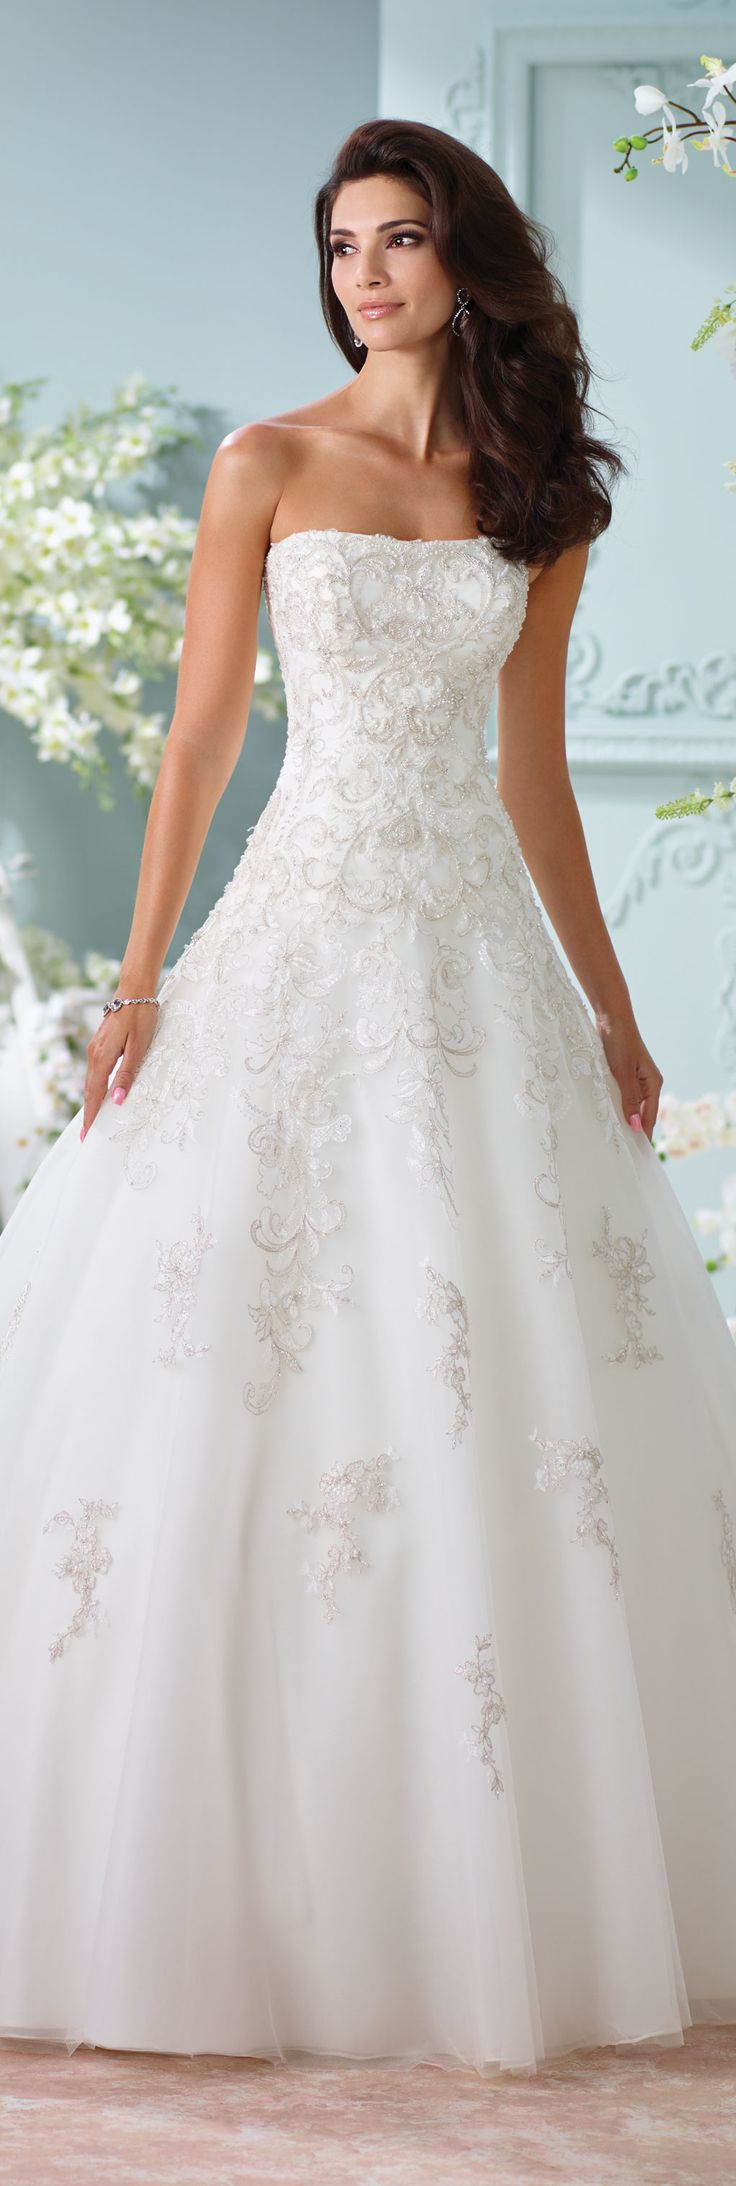 Best 25 strapless wedding dresses ideas only on pinterest for Best lace wedding dresses